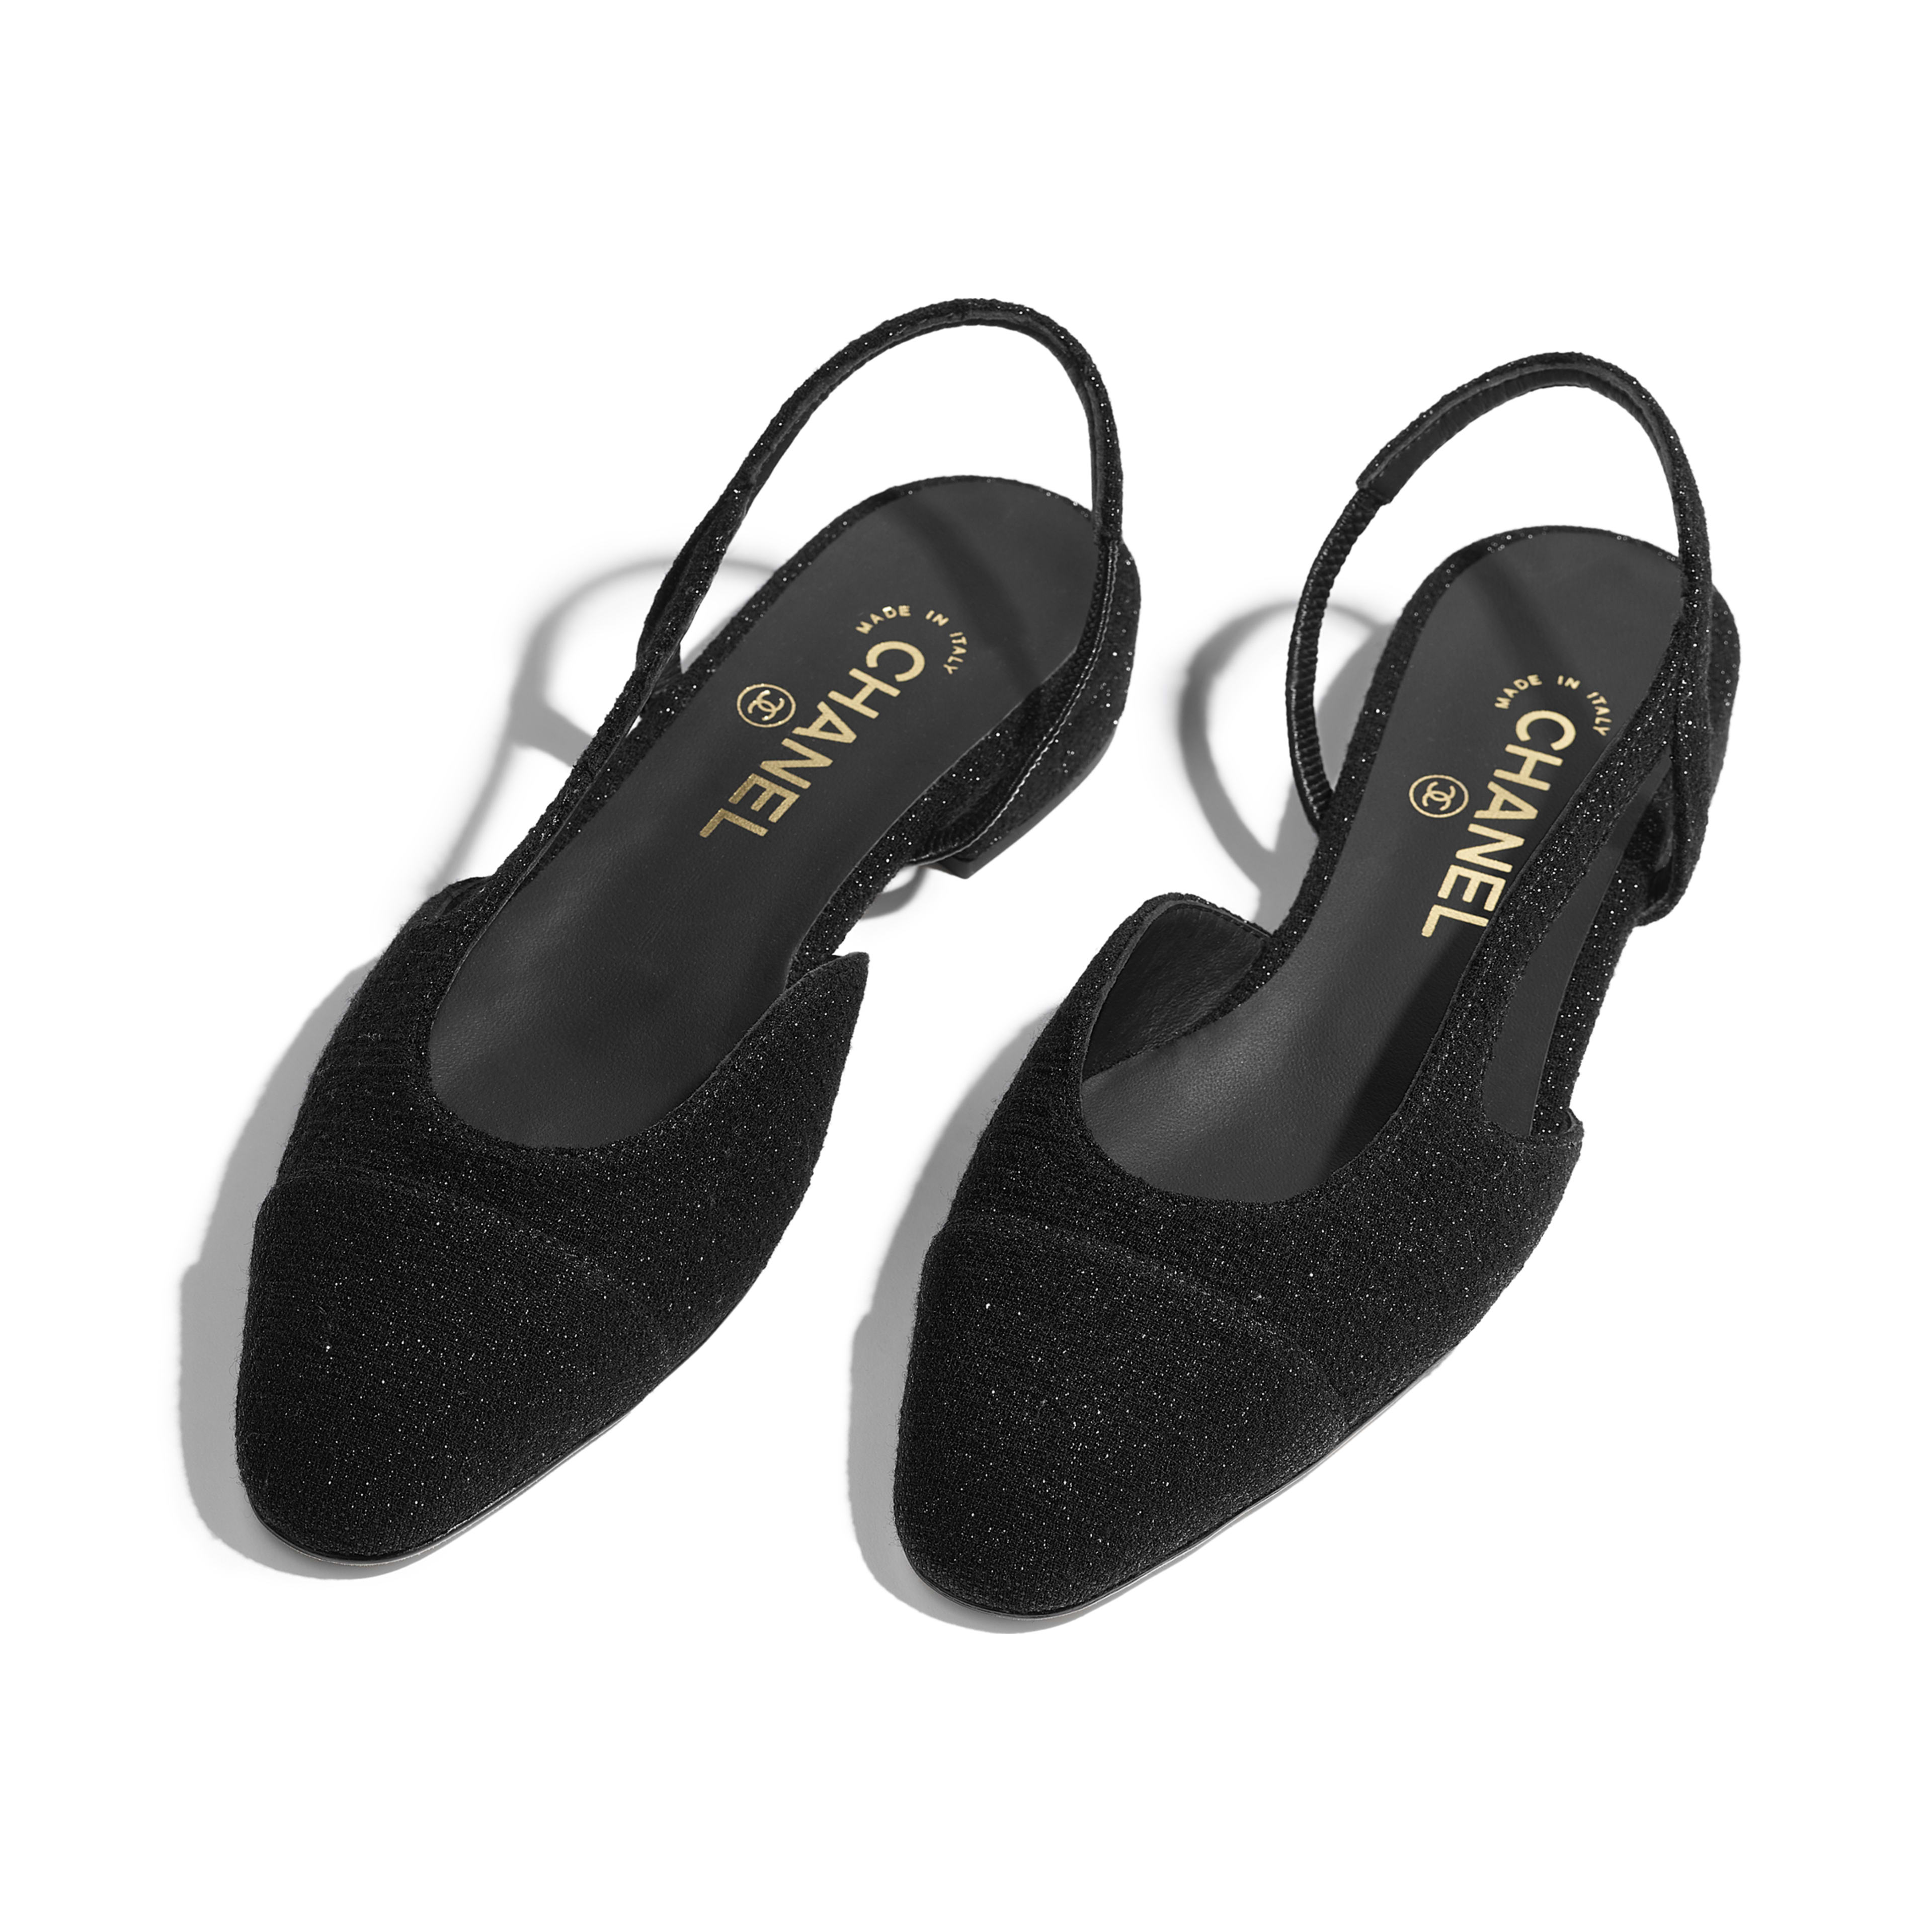 Slingbacks - Black - Tweed - Other view - see full sized version